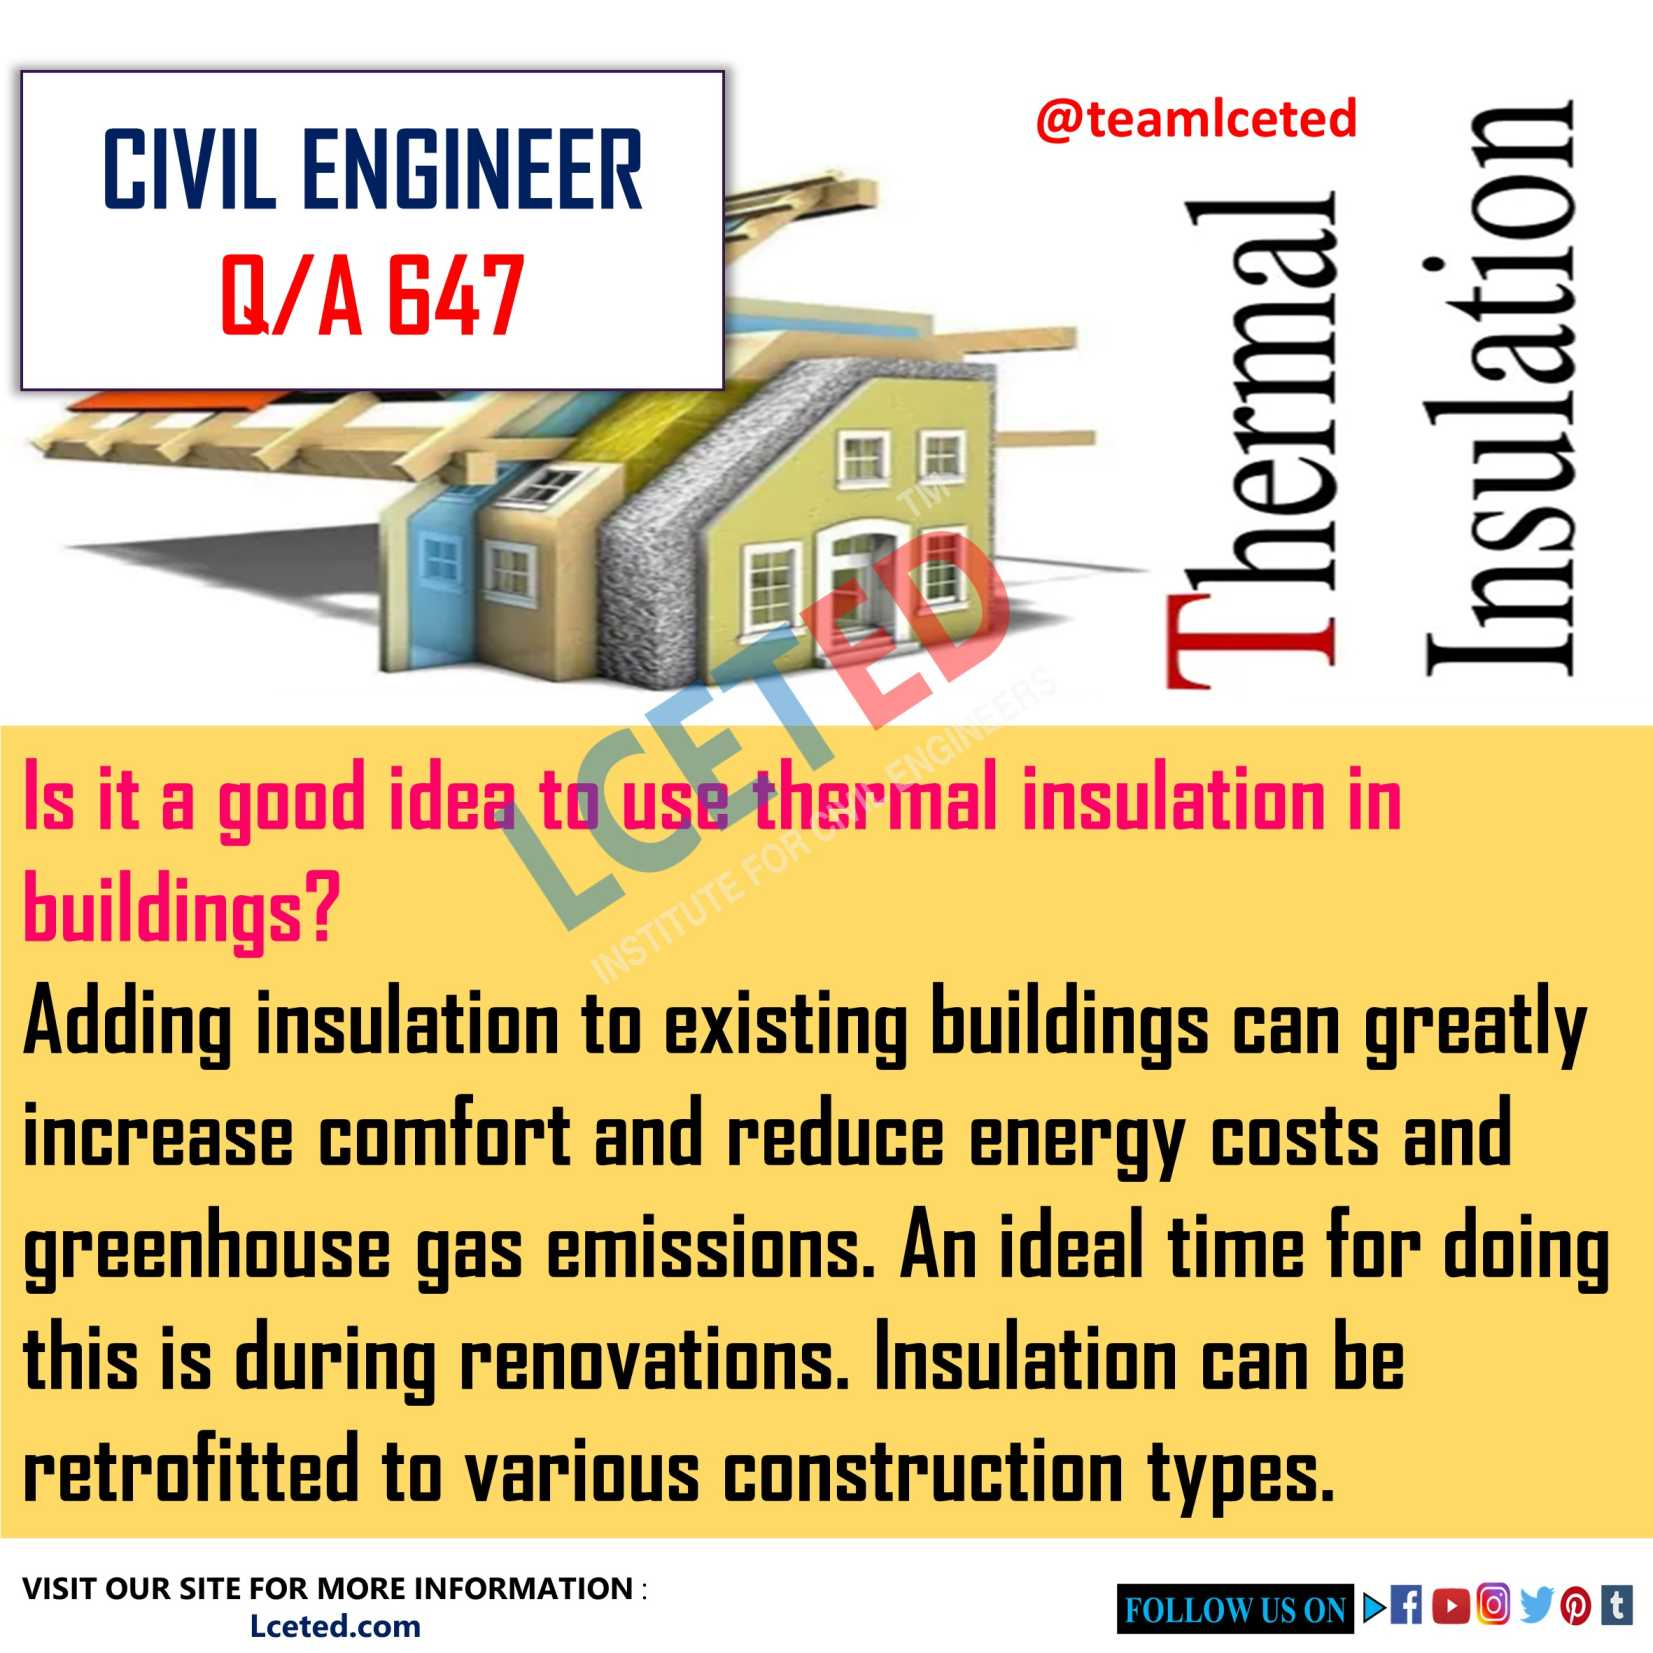 THERMAL INSULATION OF BUILDINGS